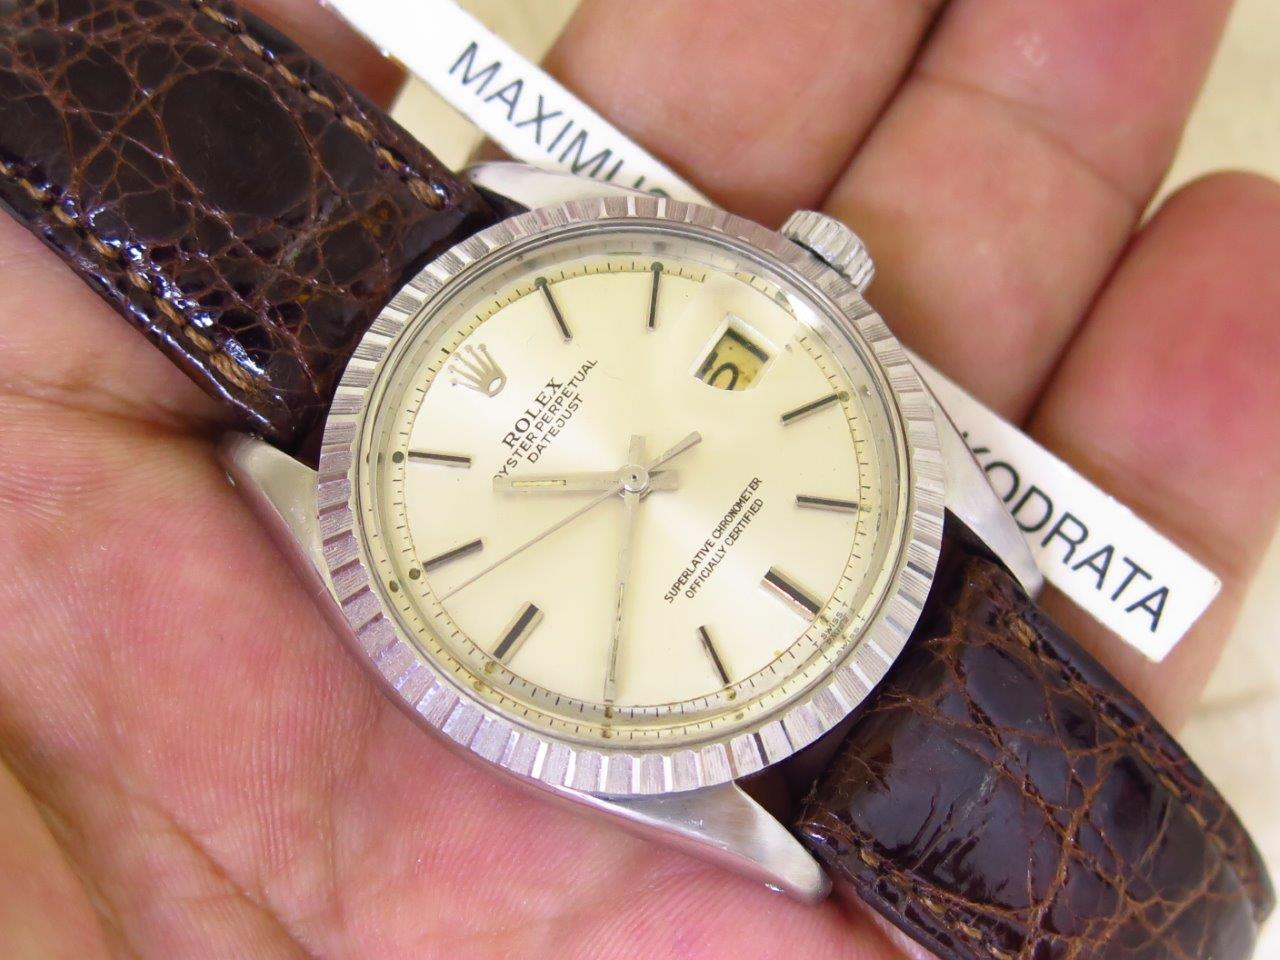 ROLEX OYSTER PERPETUAL DATE JUST SILVER DIAL - ROLEX 1603